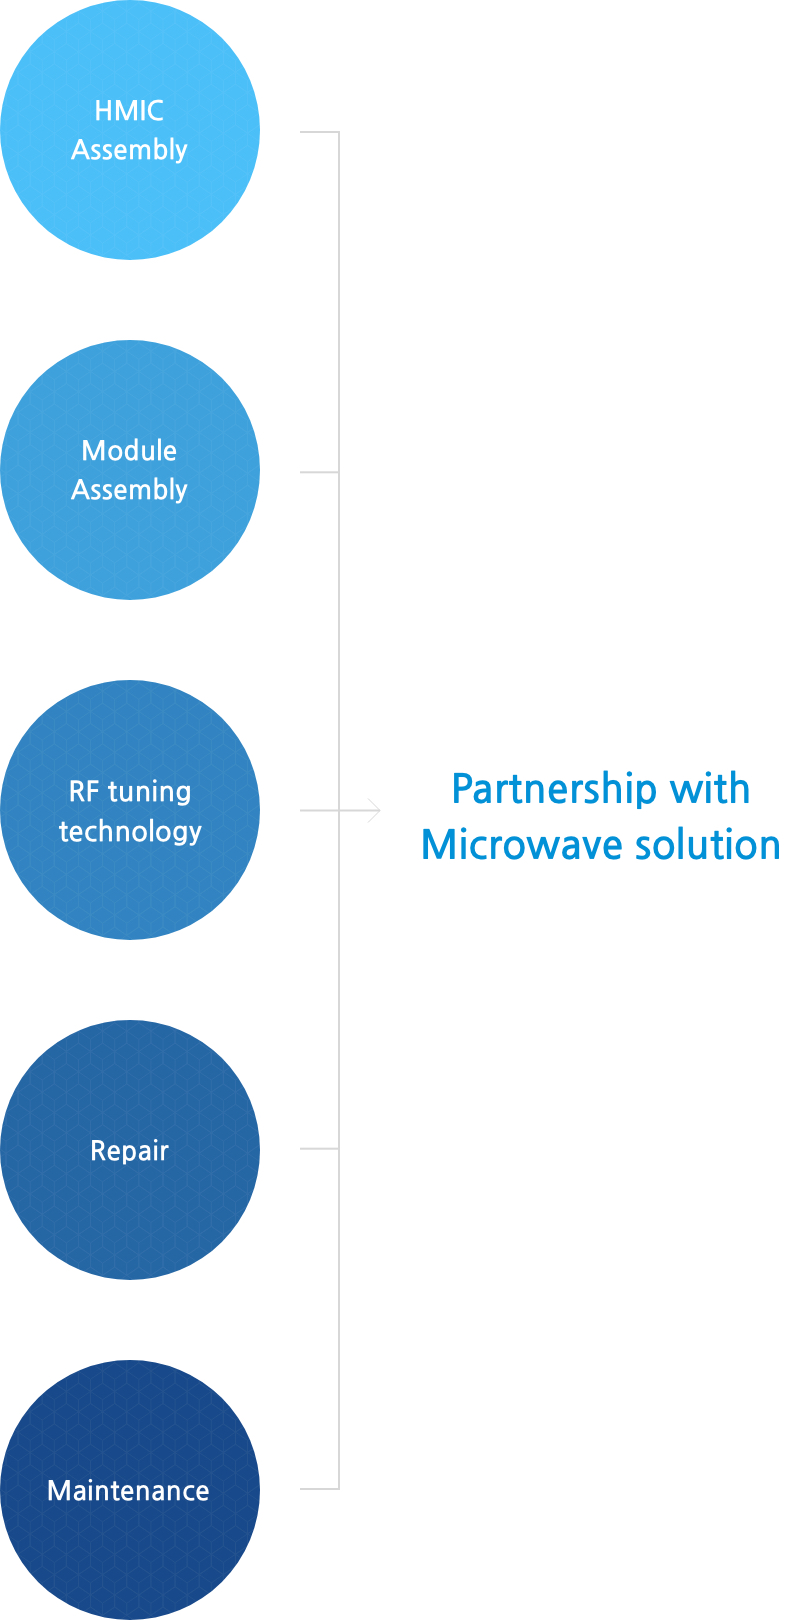 partnership with microwave solution's image